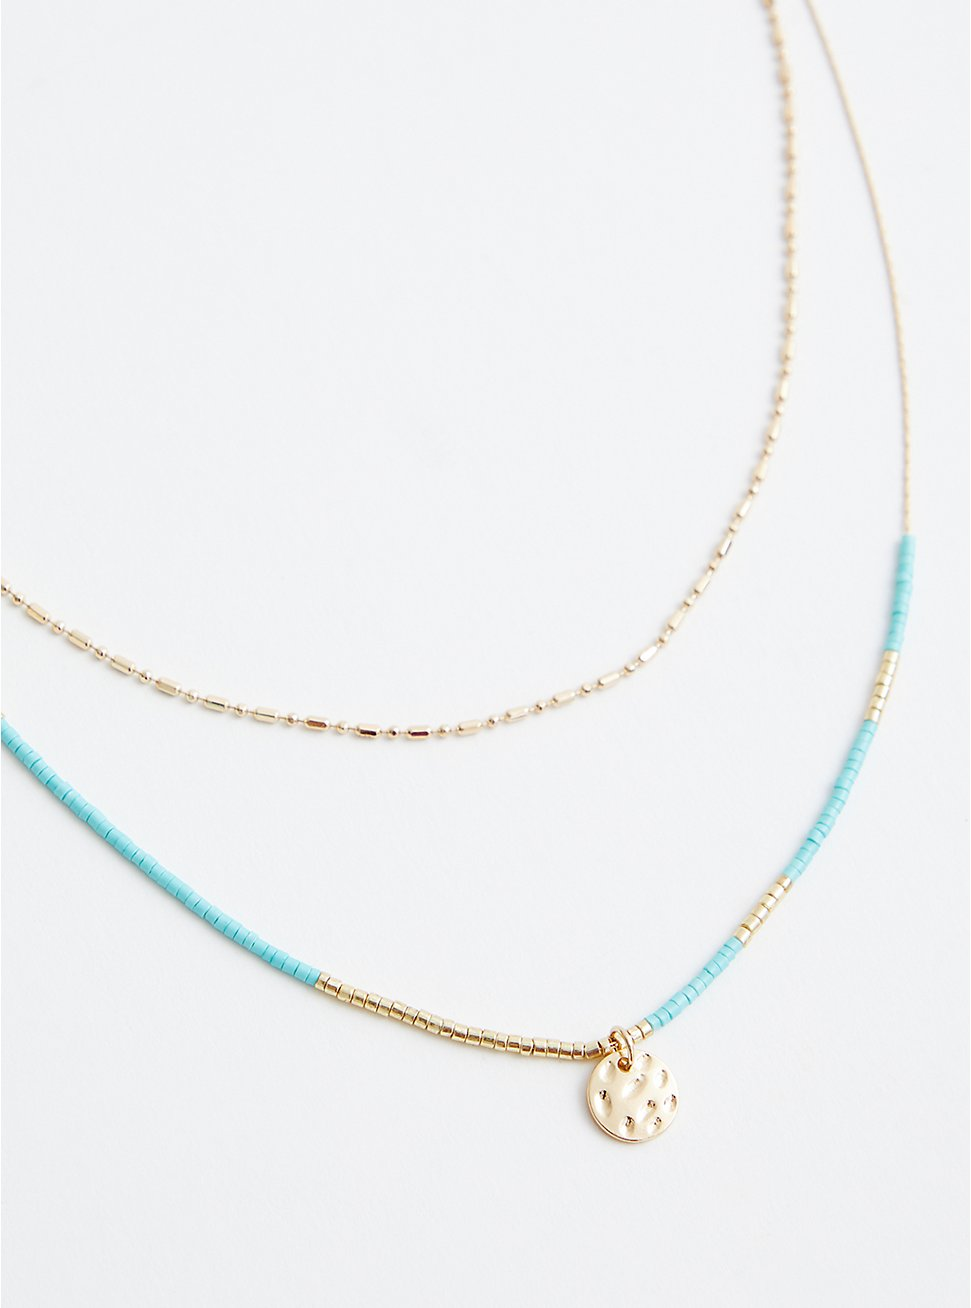 Gold Tone Turquoise Beaded Layered Necklace, , hi-res